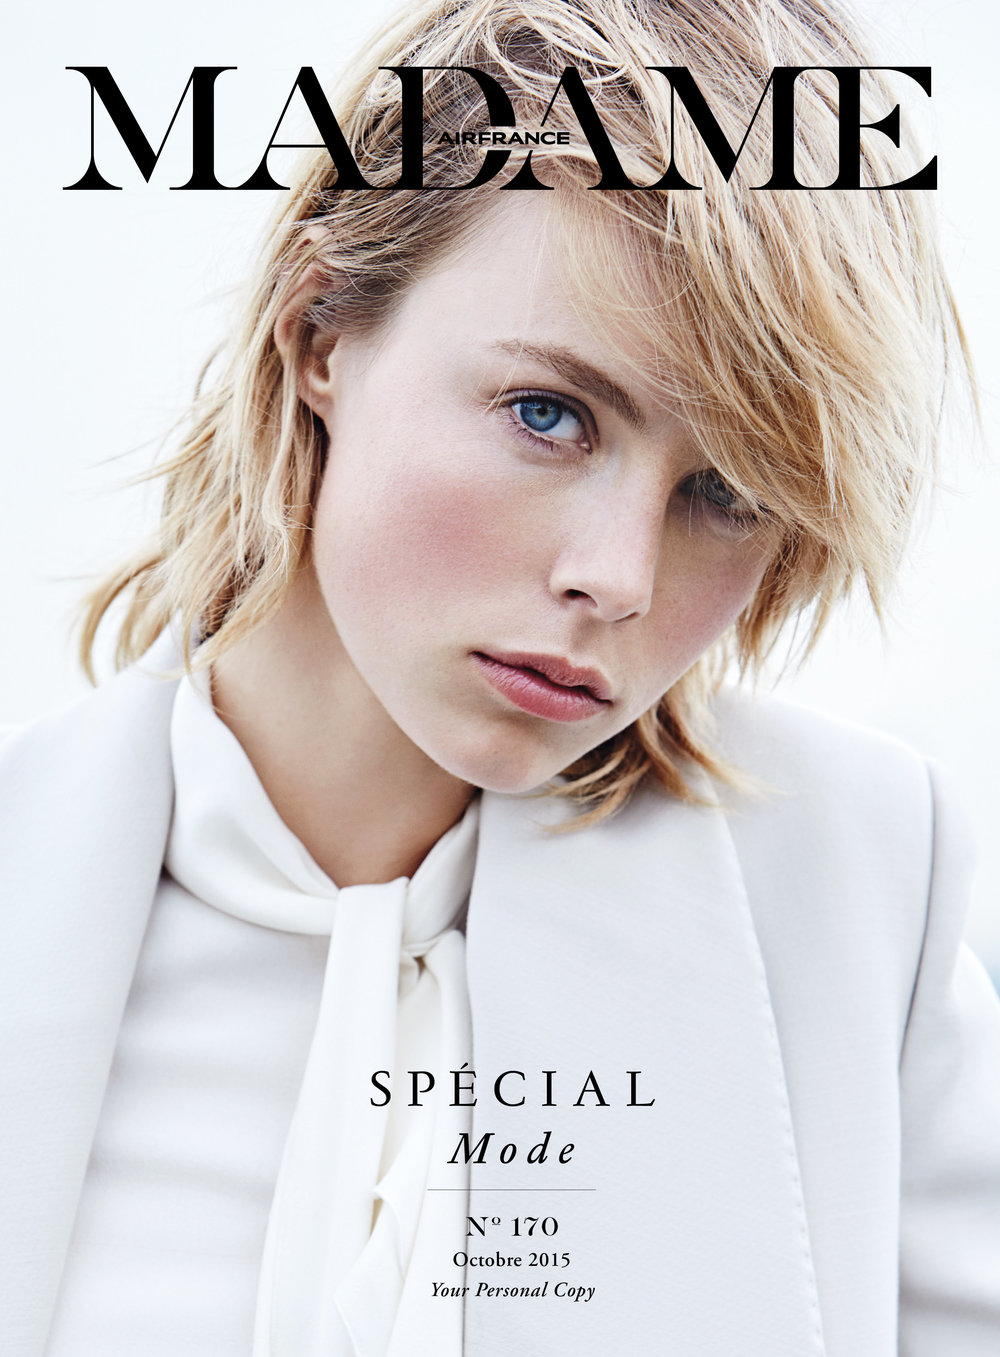 Air France Madame - N°170 Octobre 2015  Photographer - Liz Collins  Model - Edie Campbell